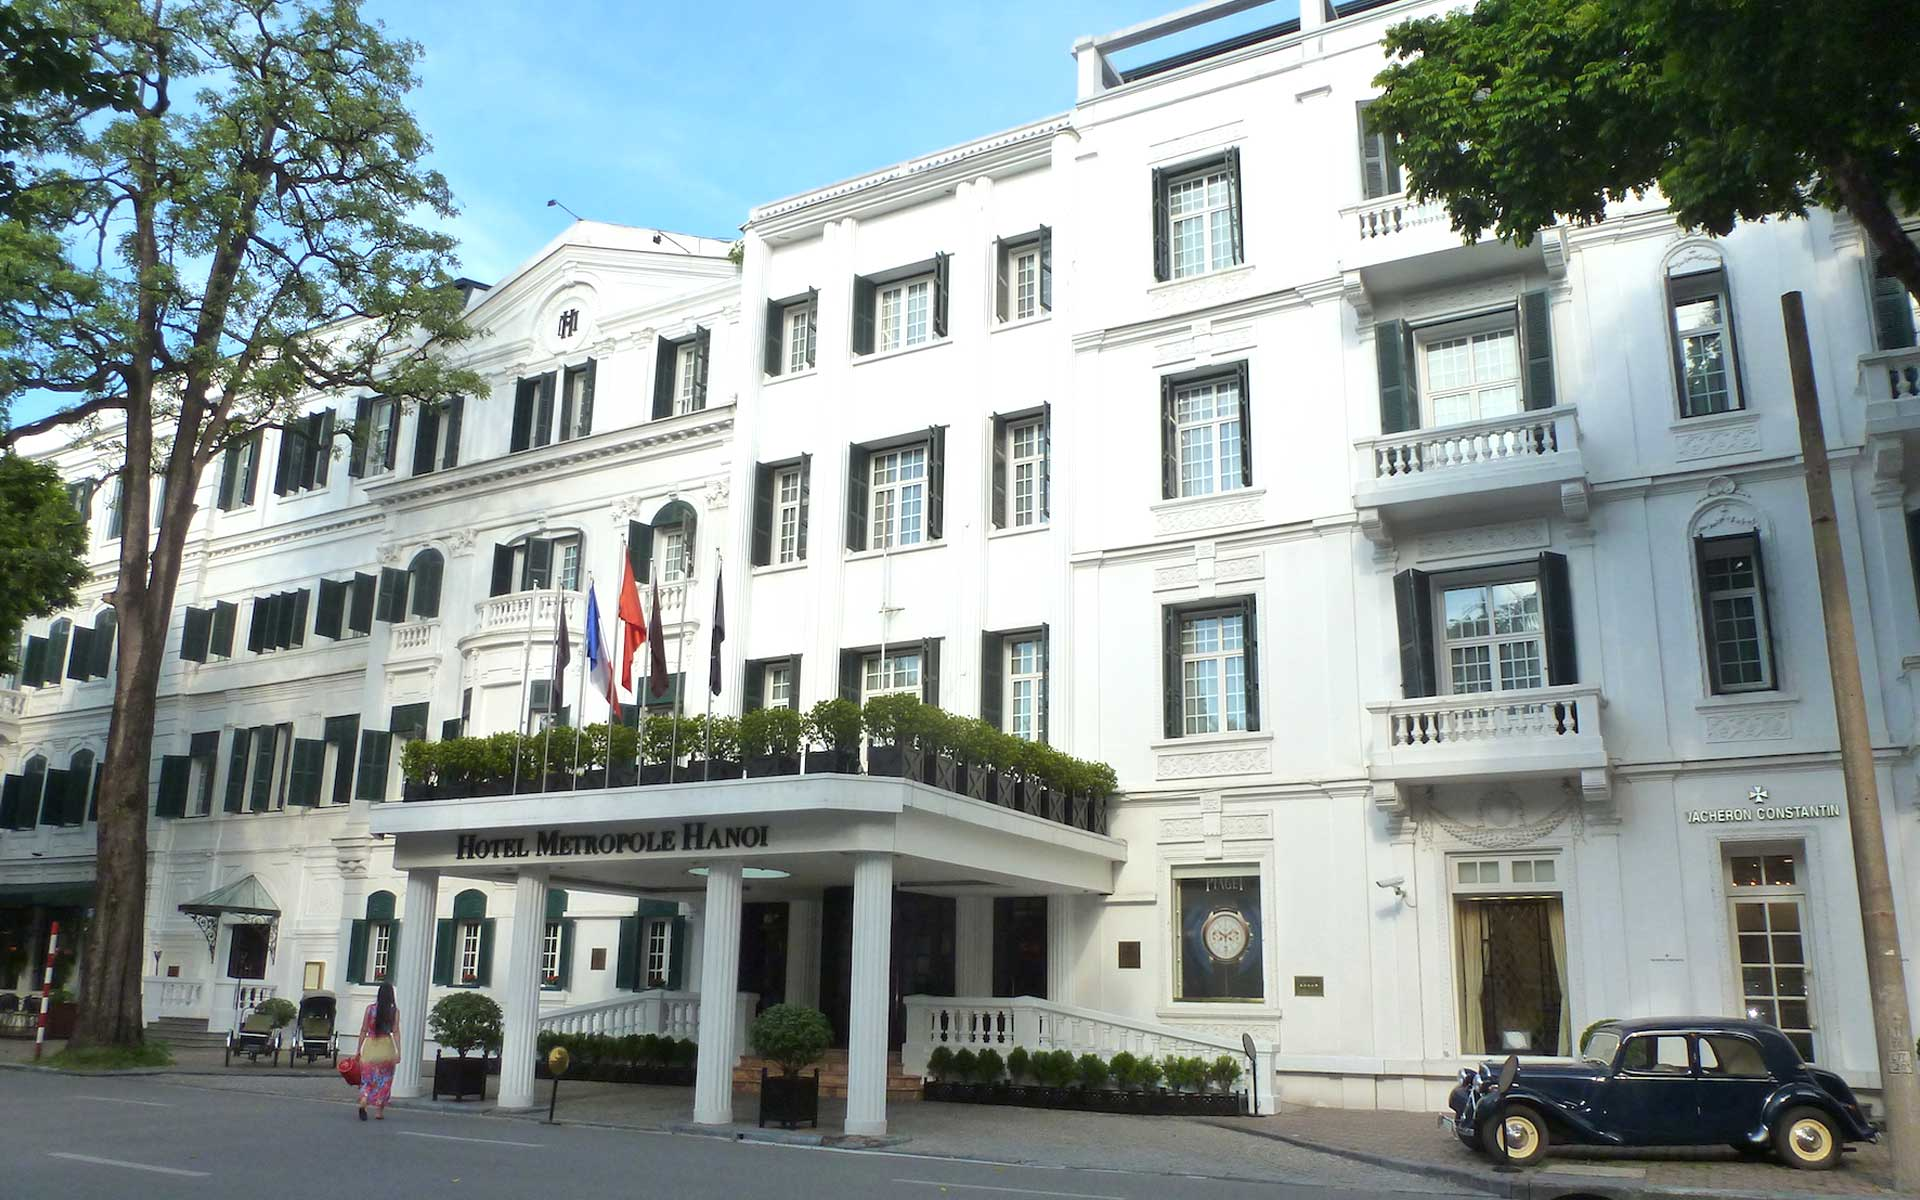 Hotel Metropole Hanoi was constructed by two French investors André Ducamp and Gustave-Émile Dumoutier